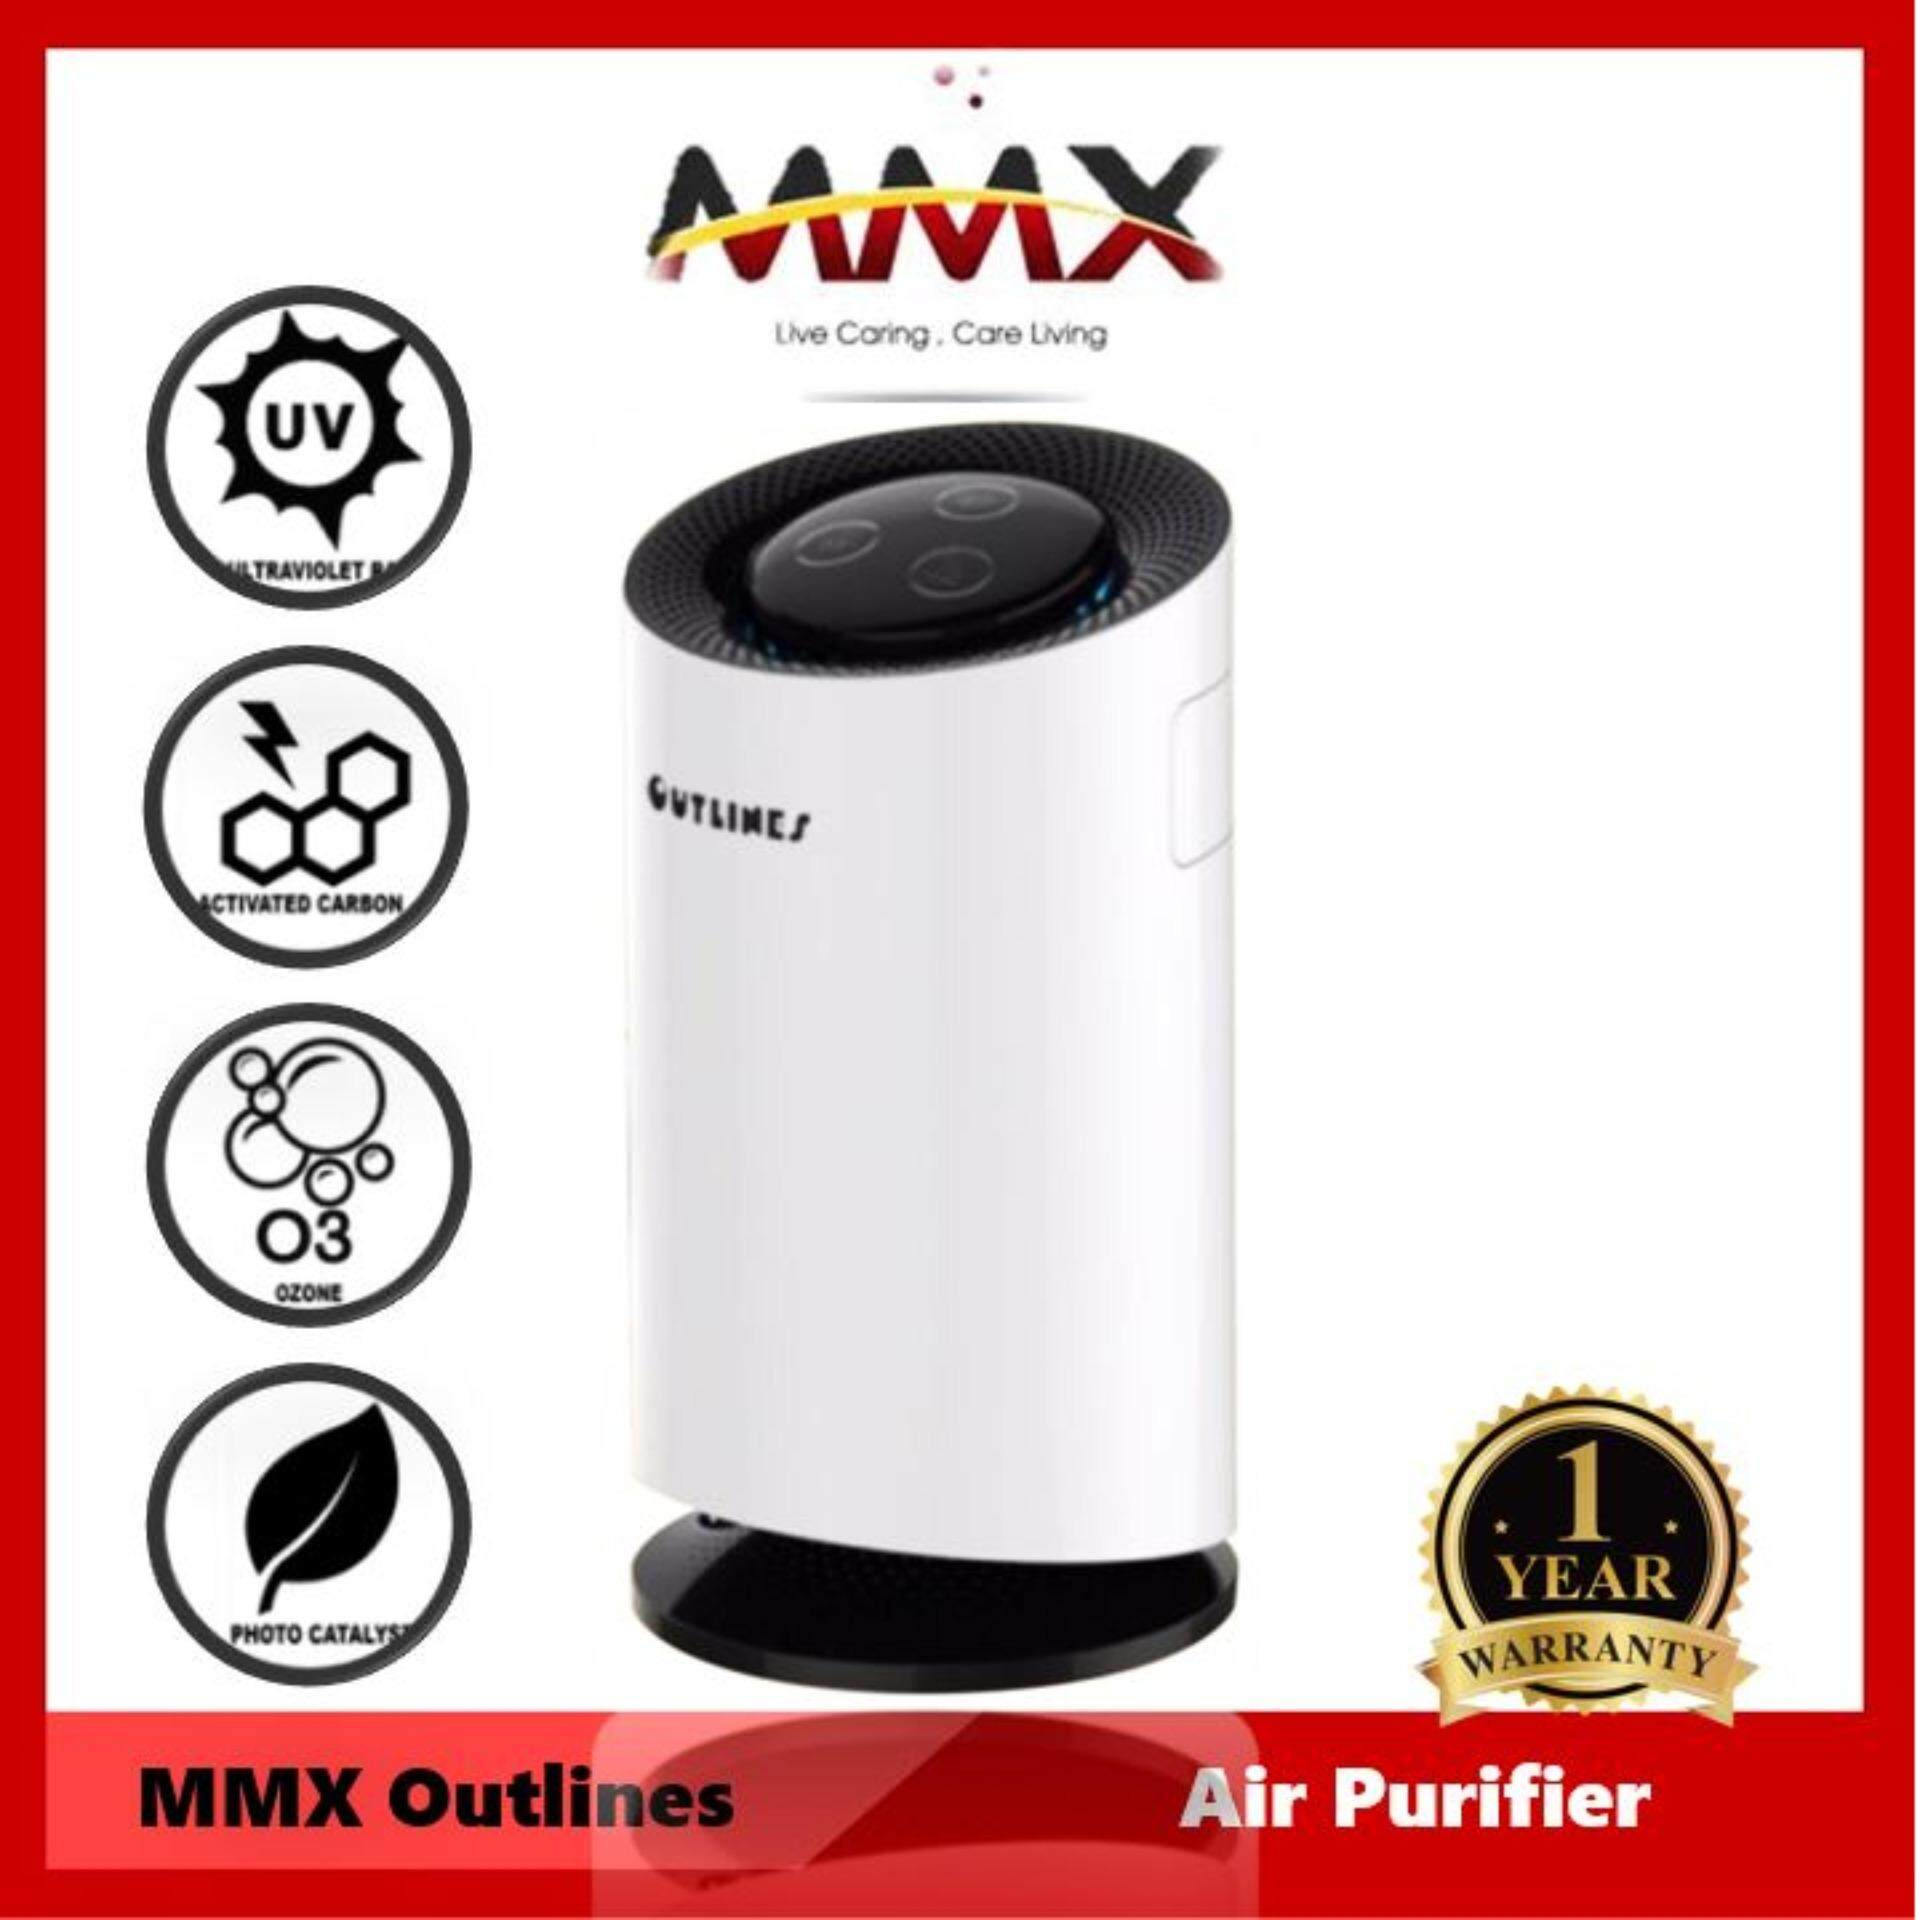 MMX Outlines 3 in 1 Air Purifier (with Air Sterilization Function)